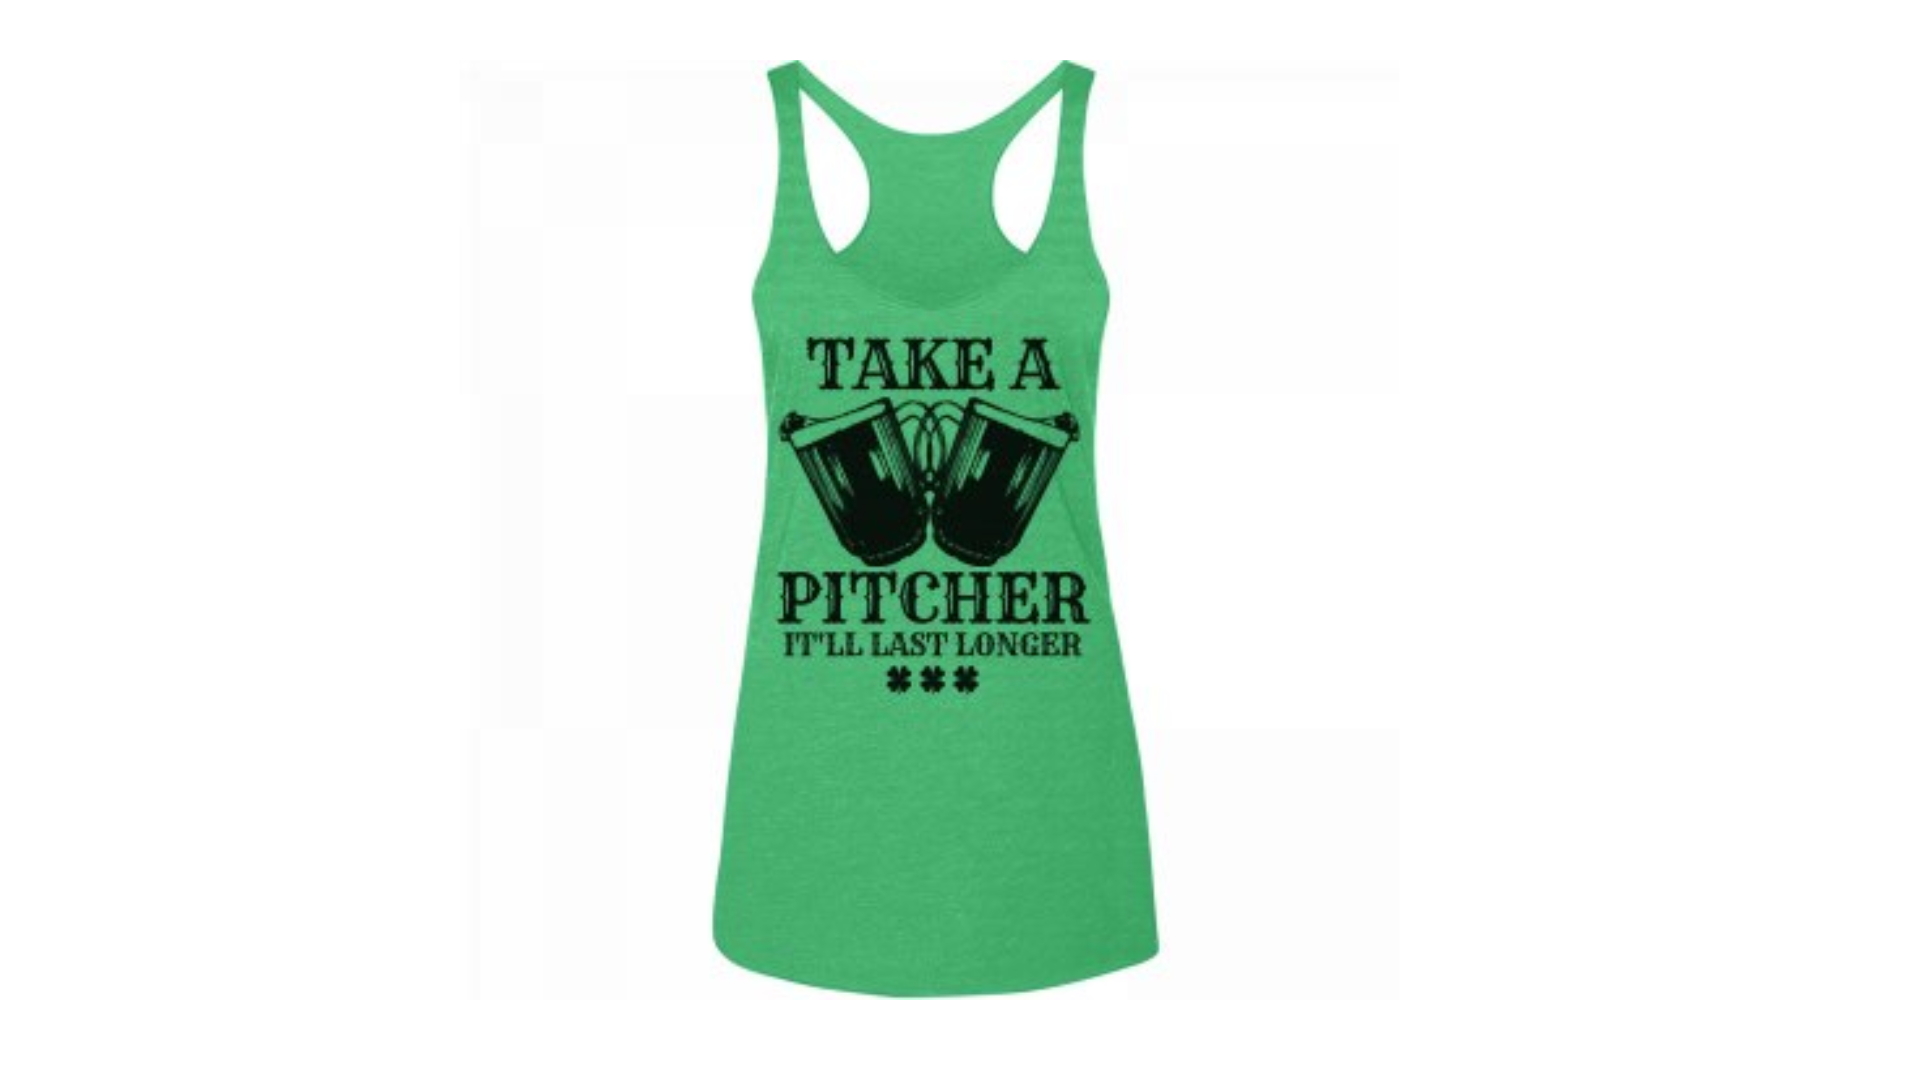 e67a556f7 St. Patrick's Day bartender girl tank, $21.97, customizedgirl.com